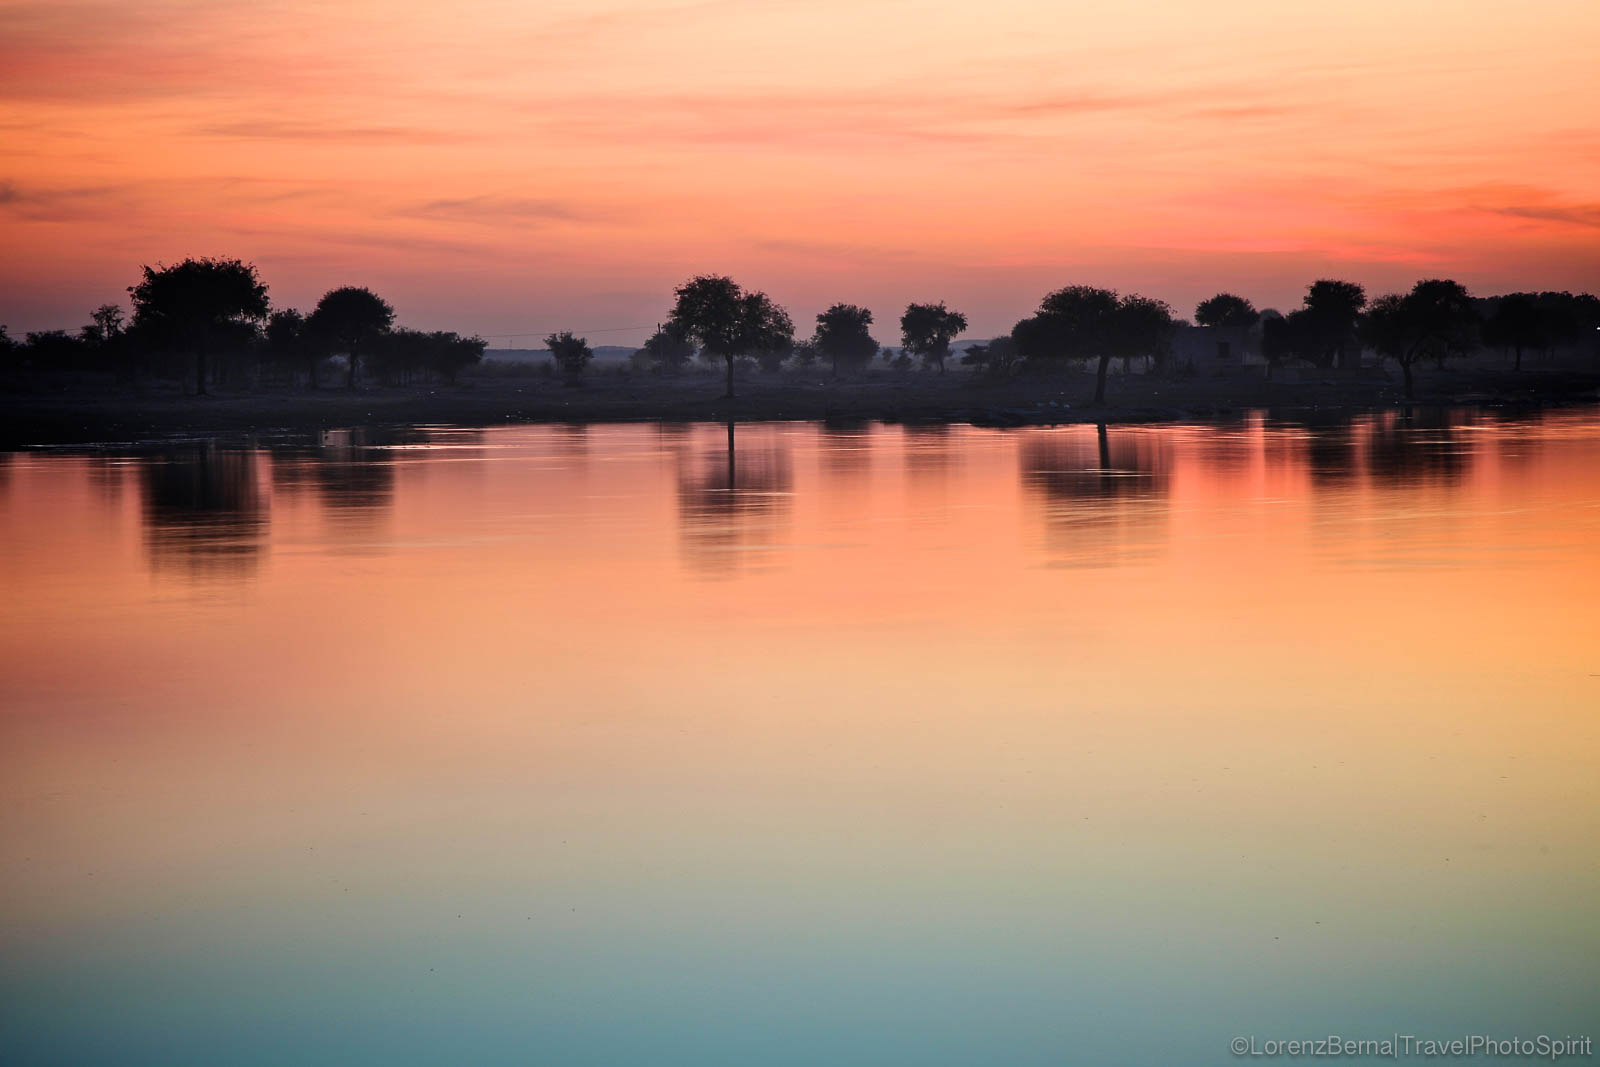 Sunset colors reflecting on Gadisar Lake, Jaisalmer - A Lorenz Berna Photography of India